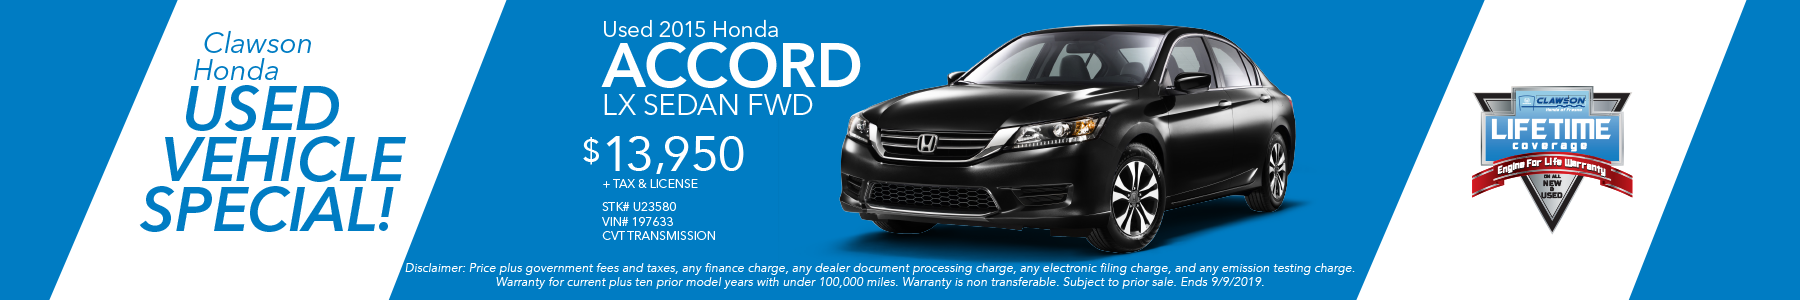 Clawson Honda of Fresno | New & Used Honda Dealer in Fresno, CA